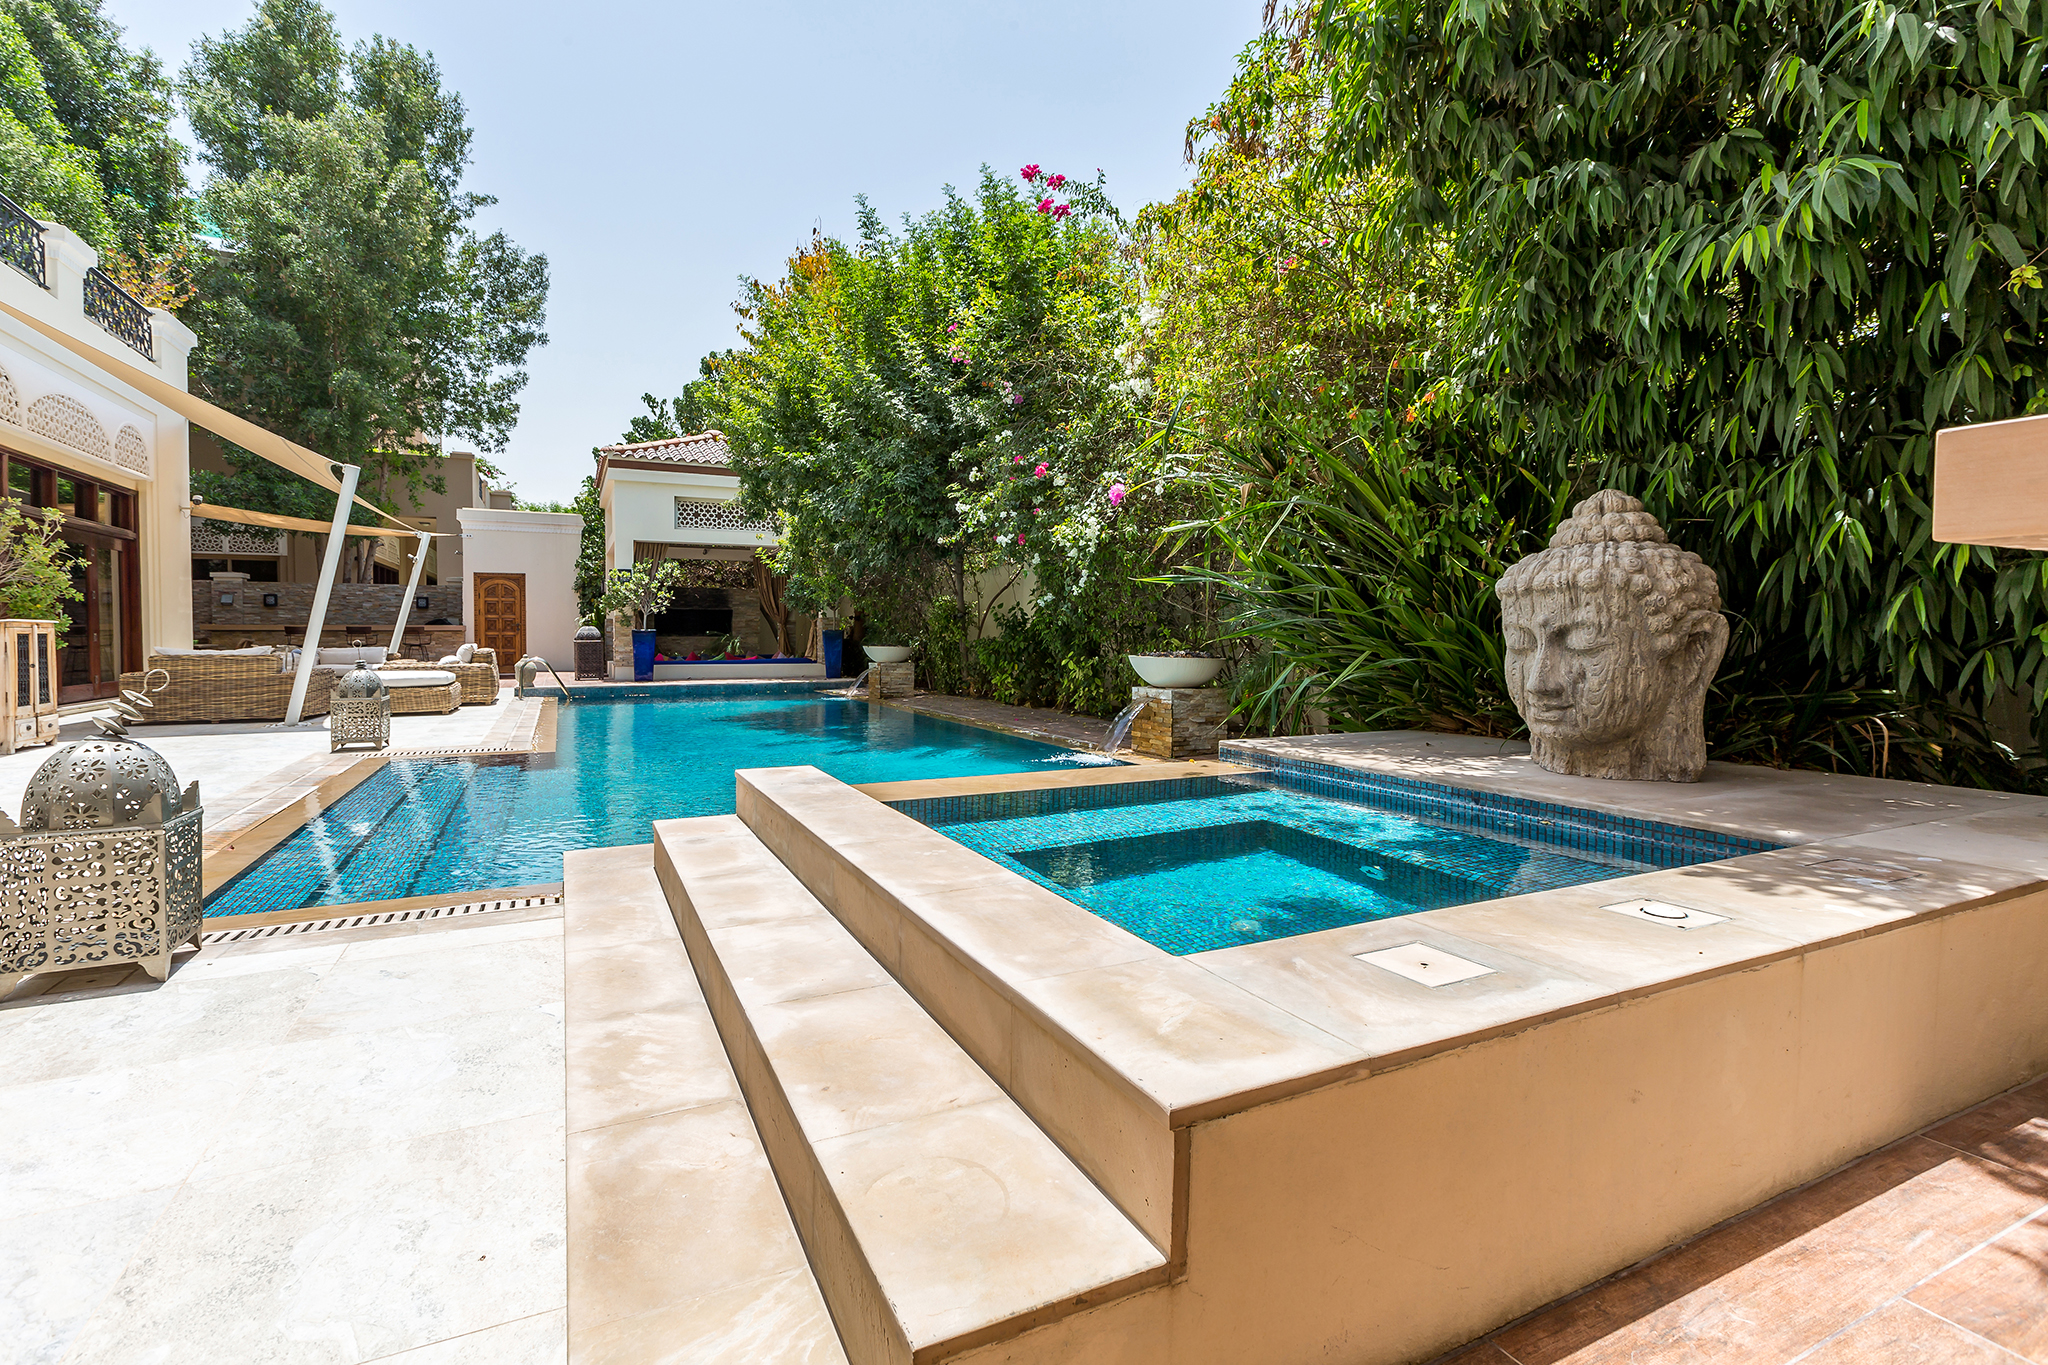 Private temperature-controlled swimming pool with jacuzzi